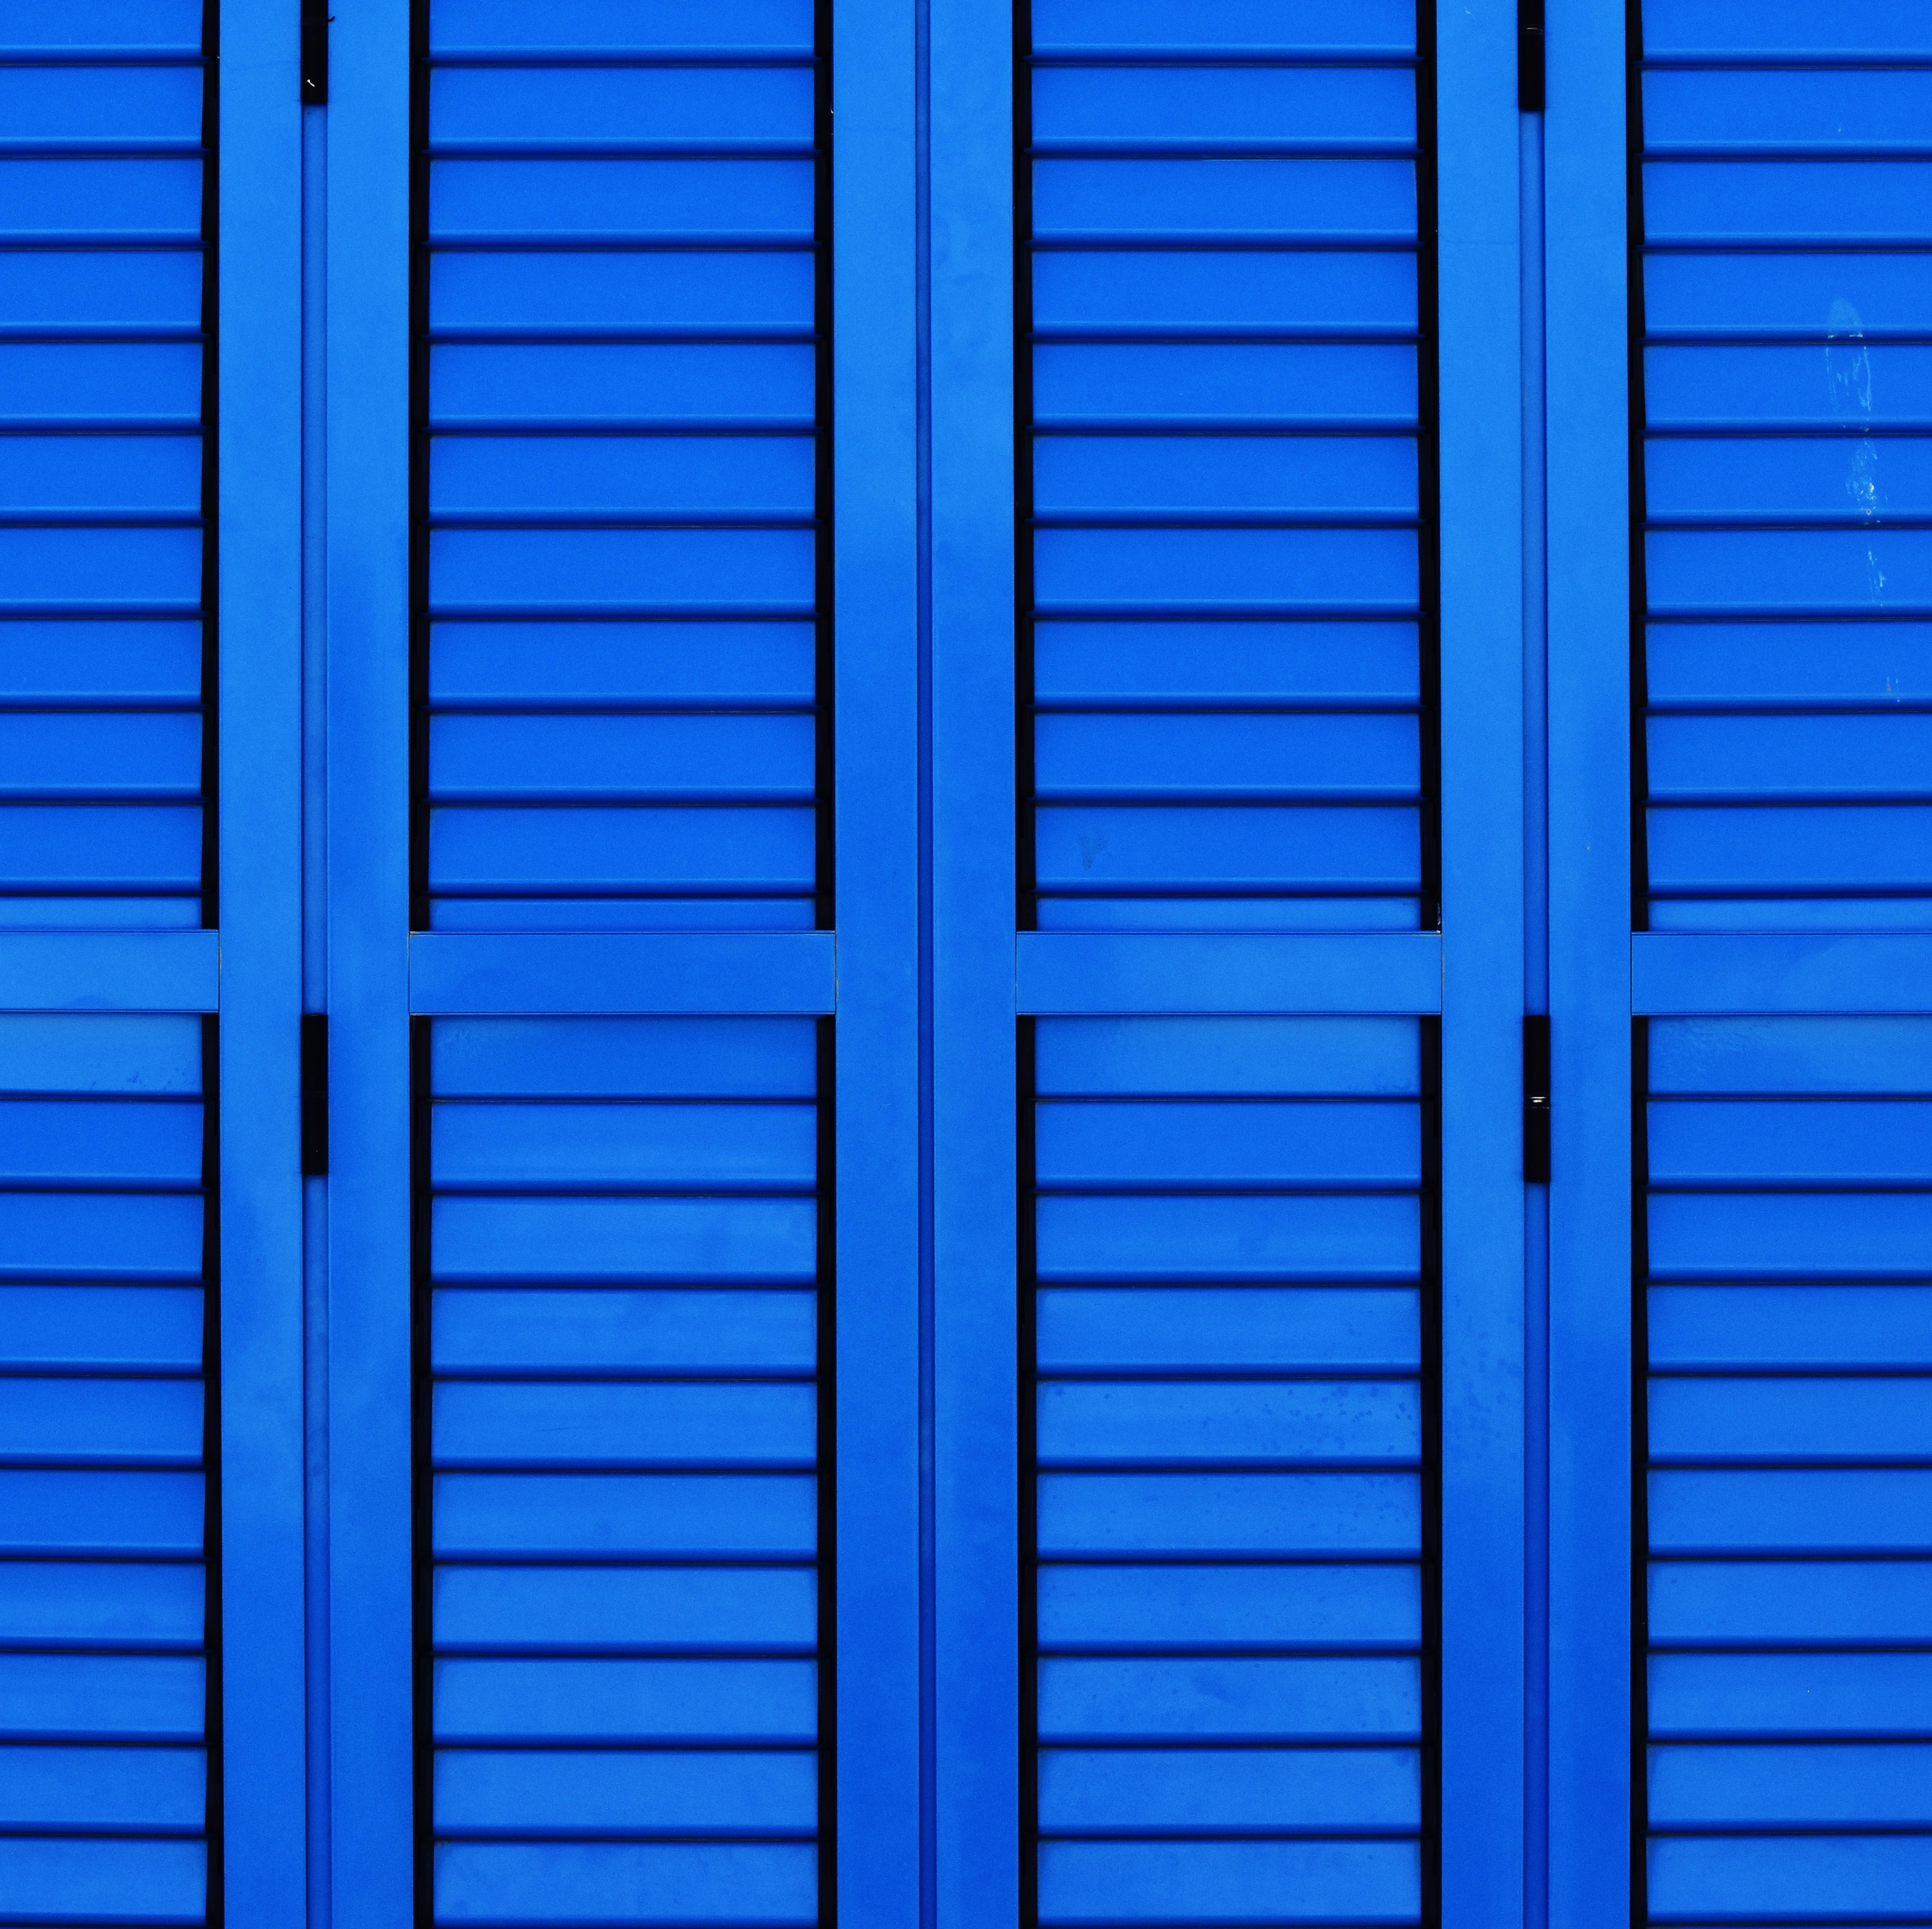 blue wooden cabinet